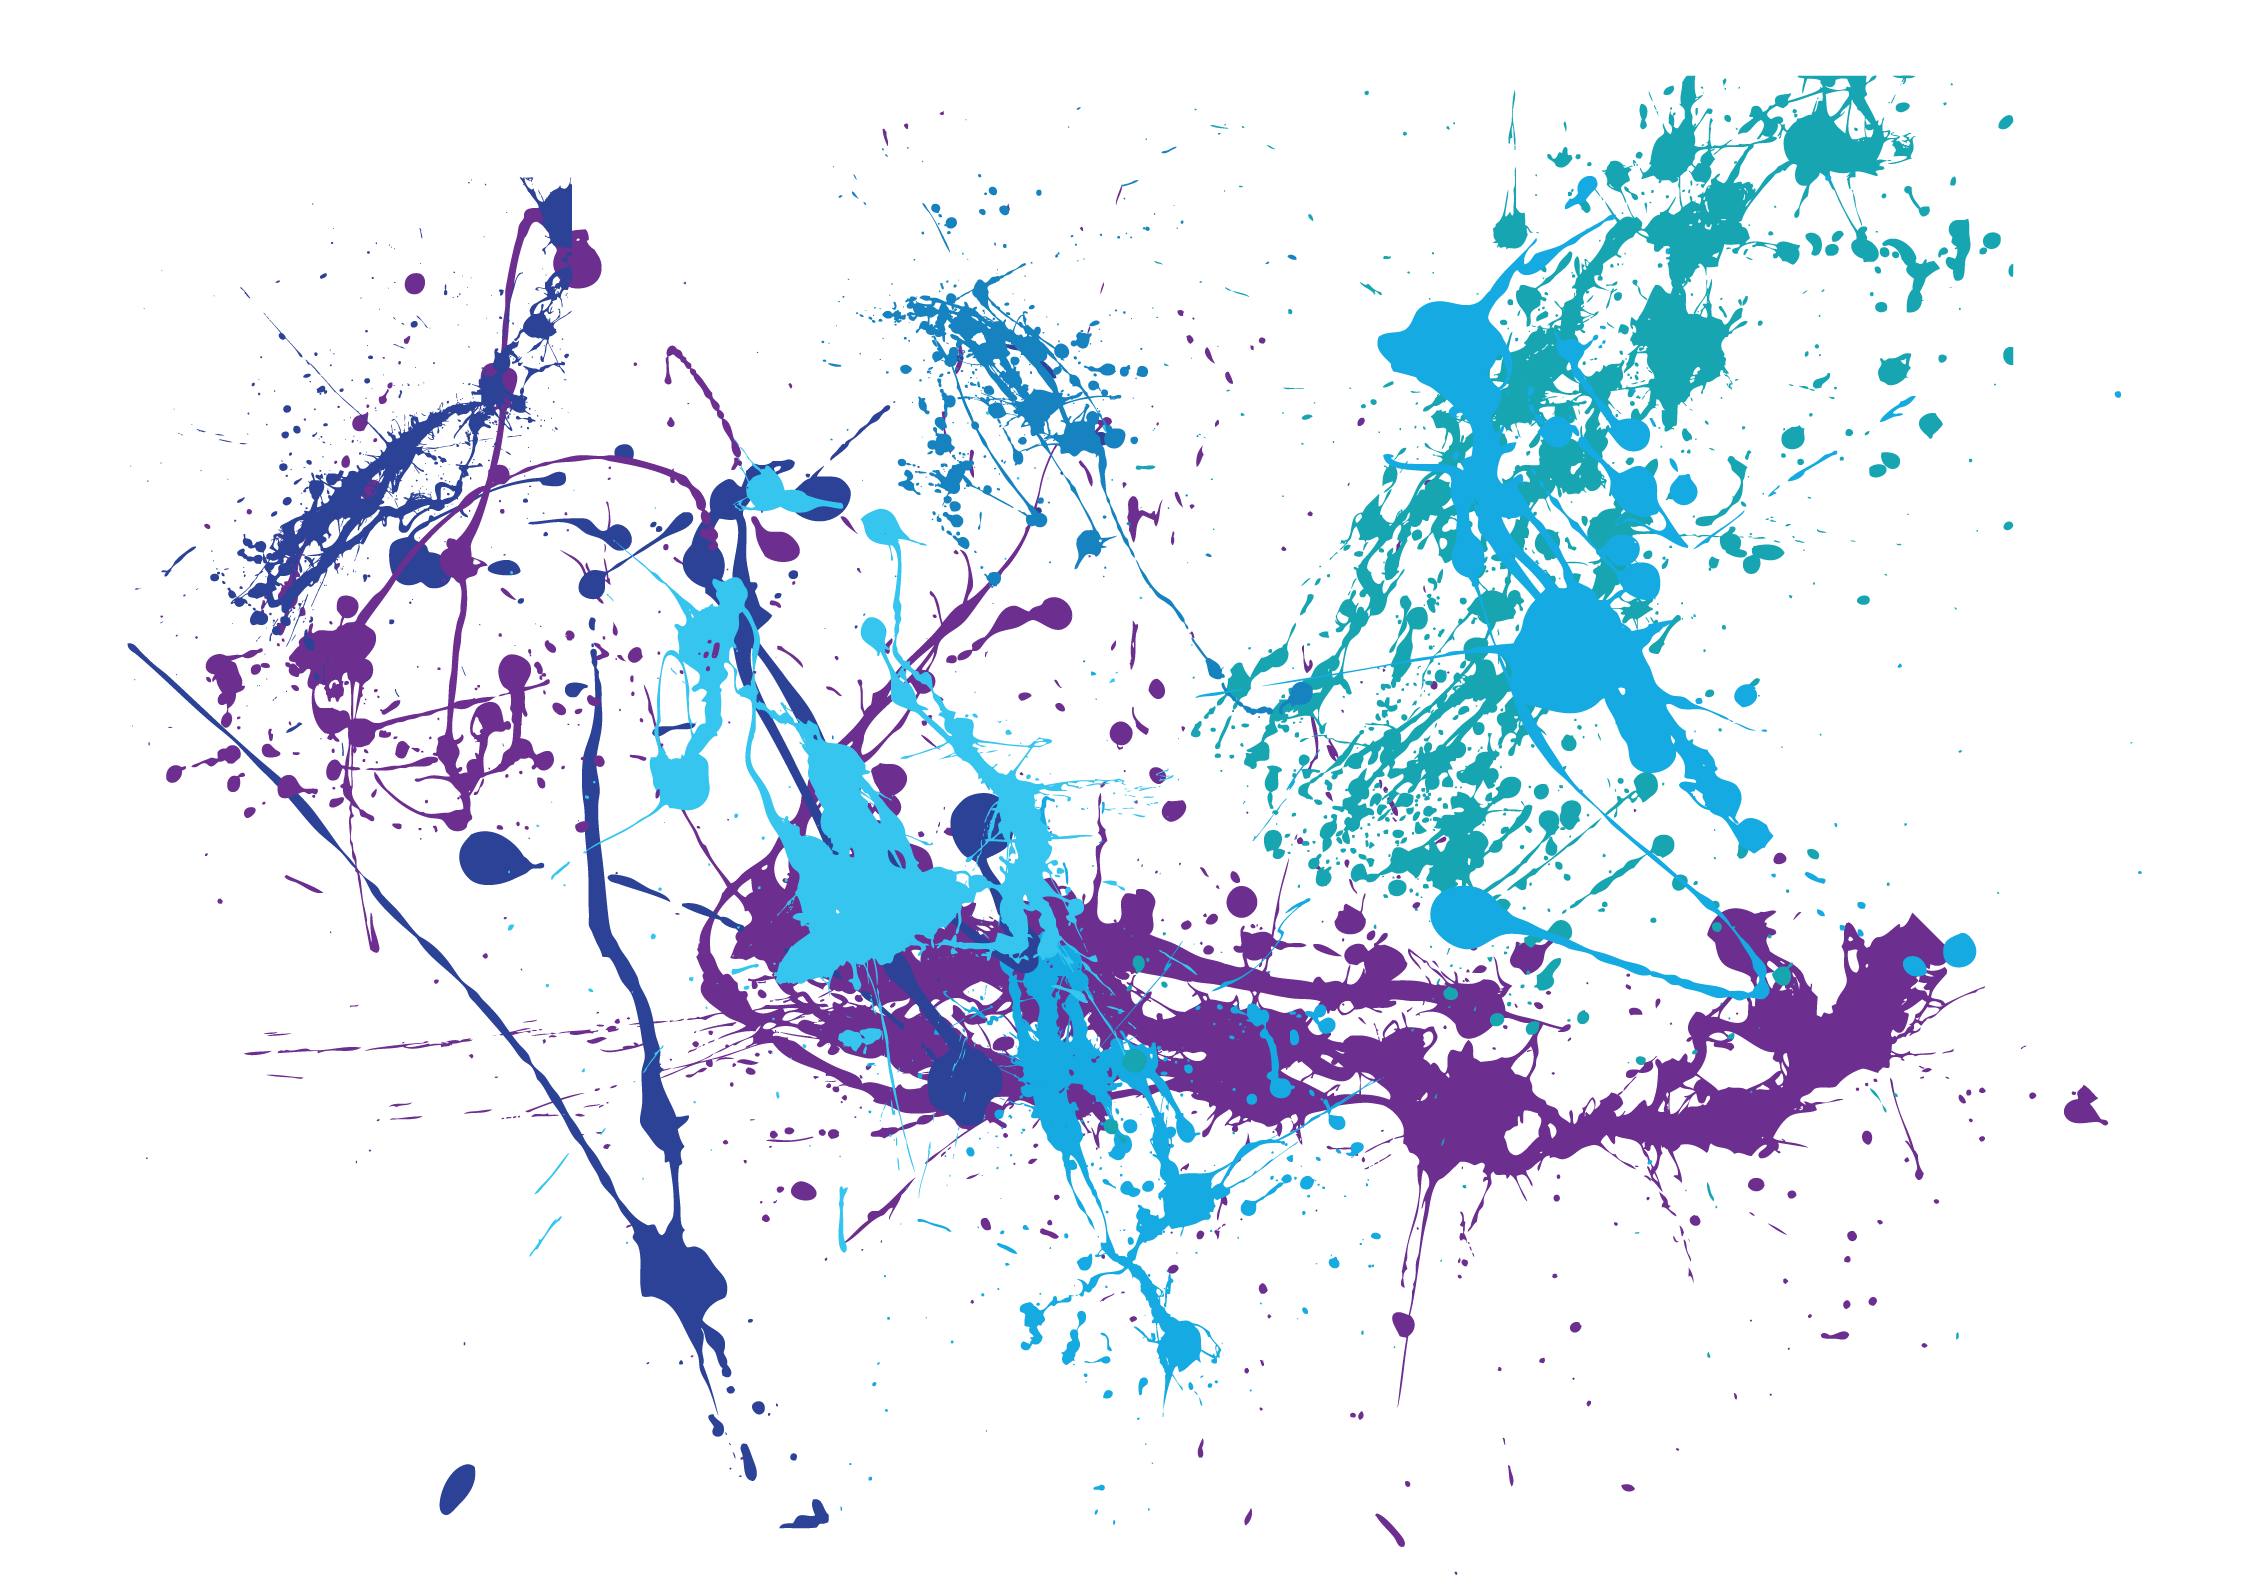 Color spray png. Paint adobe illustrator brush